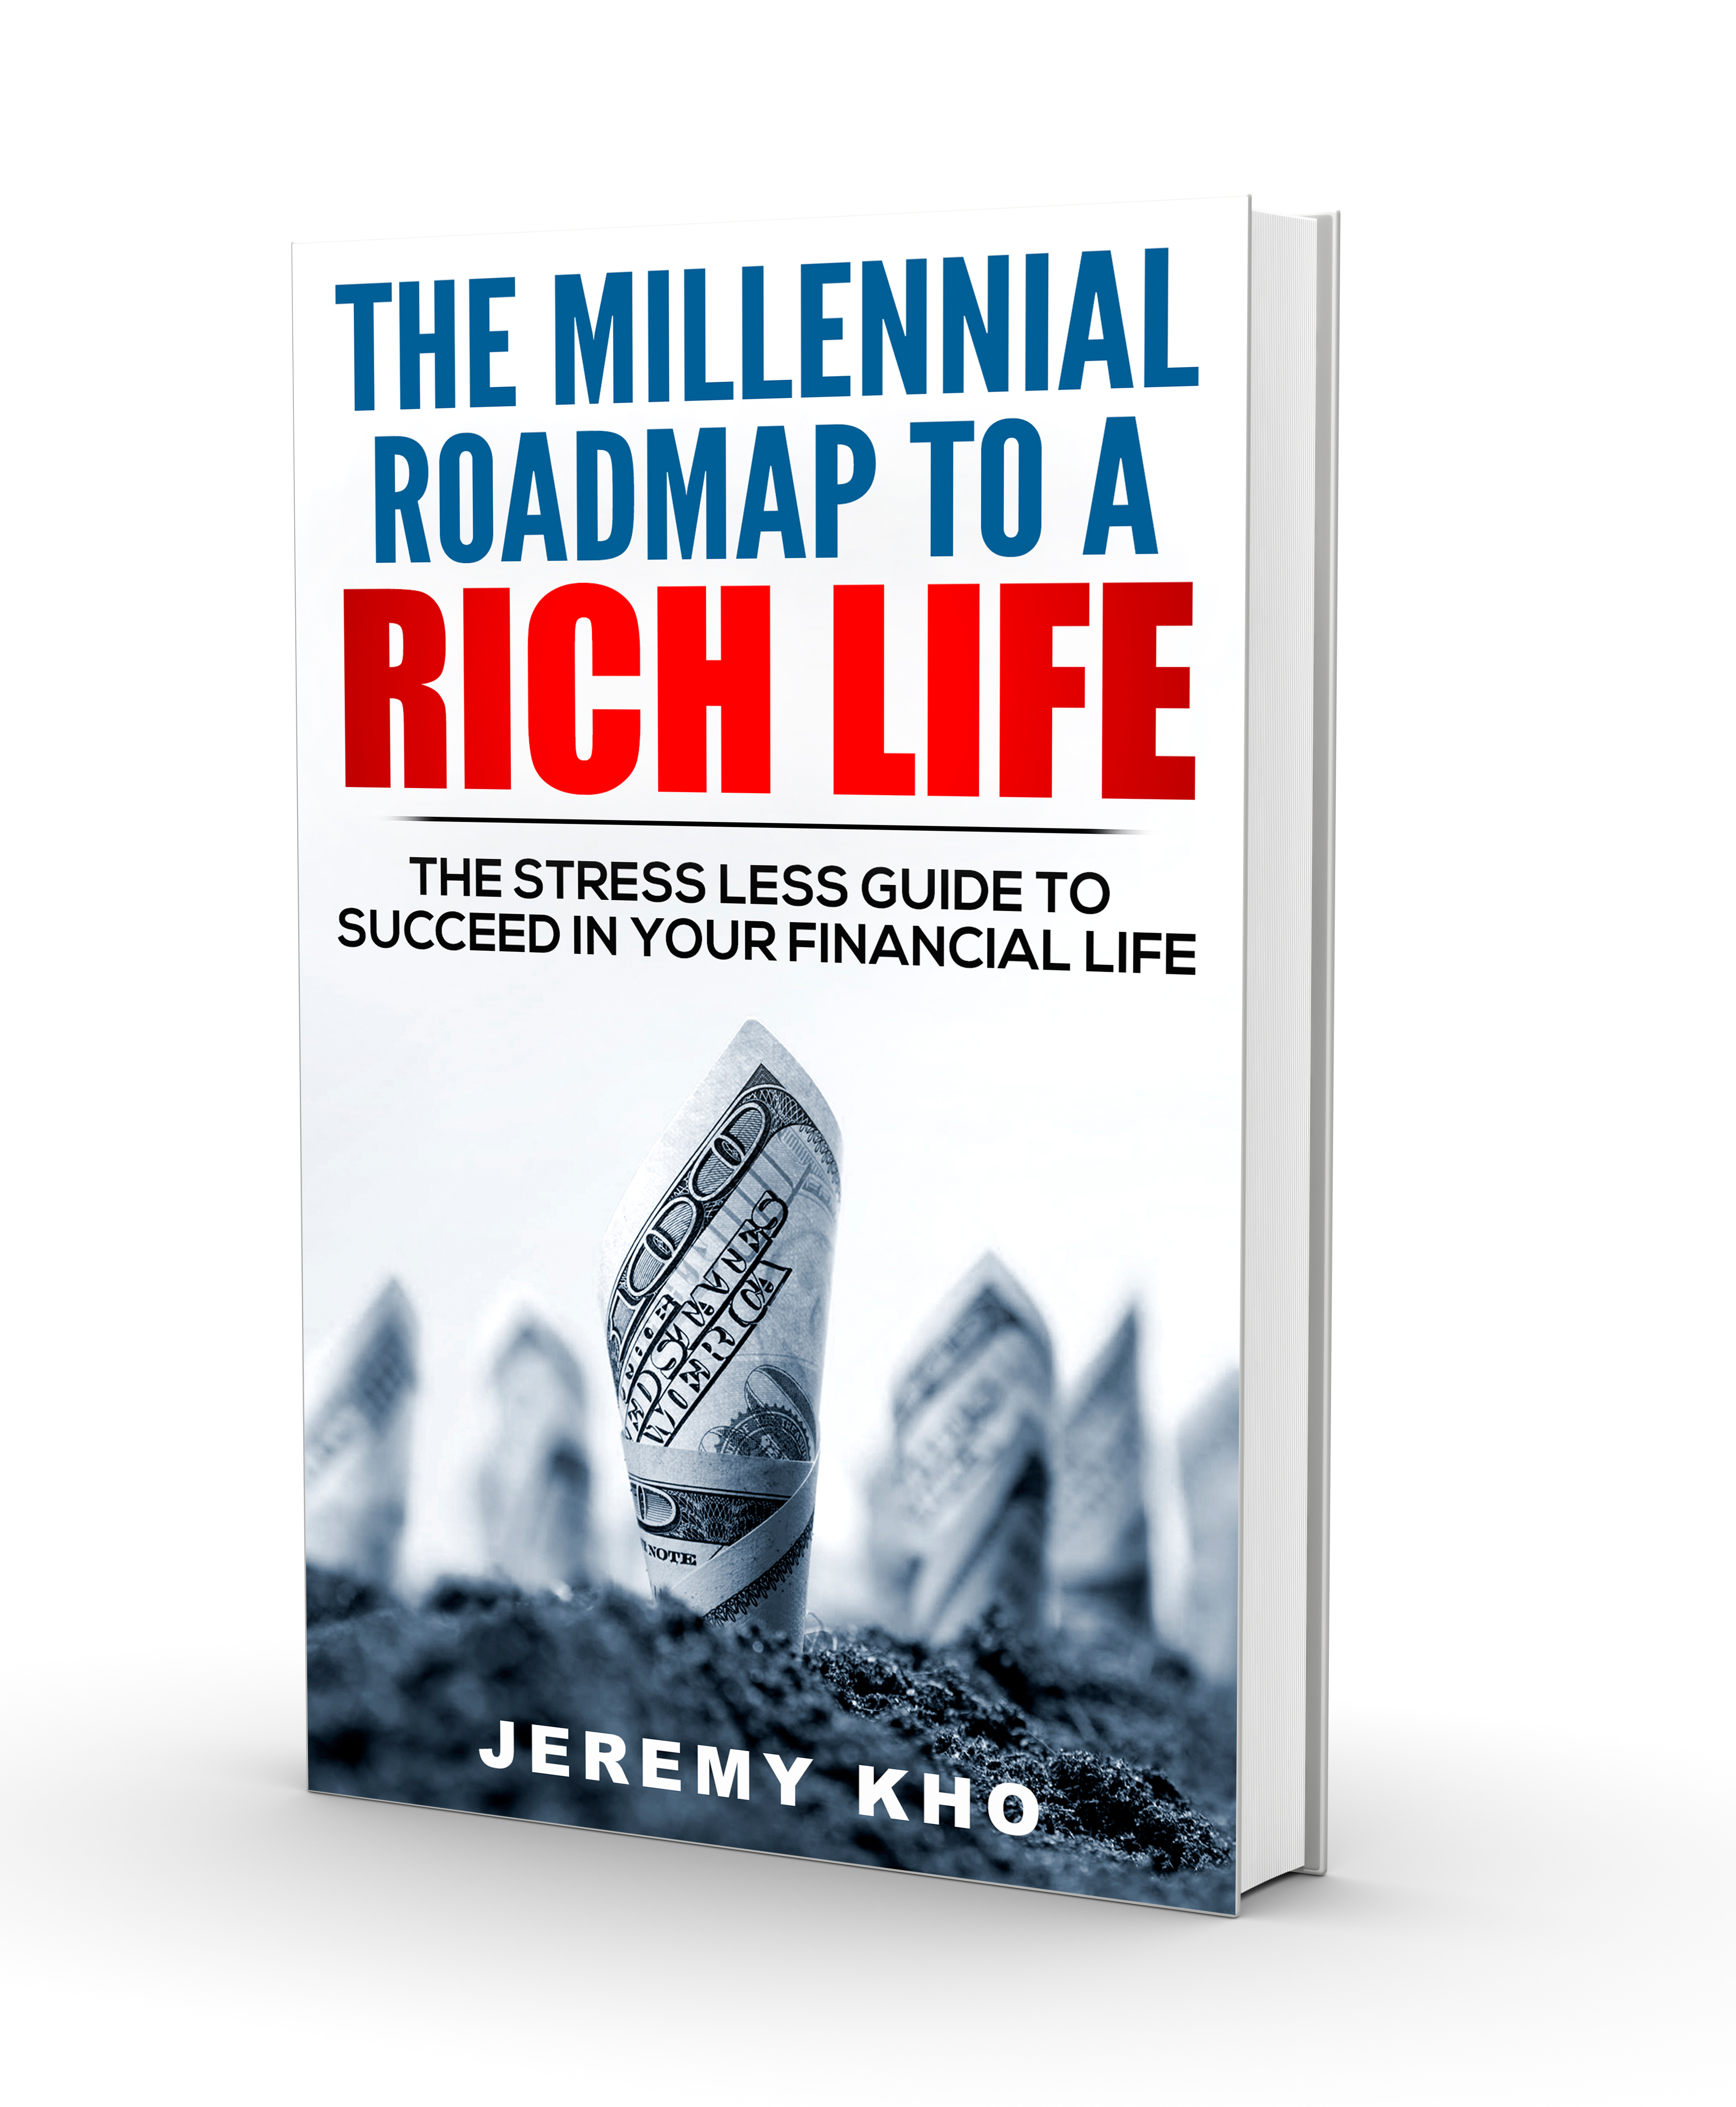 New Ebook: The Millennial Roadmap to A Rich Life